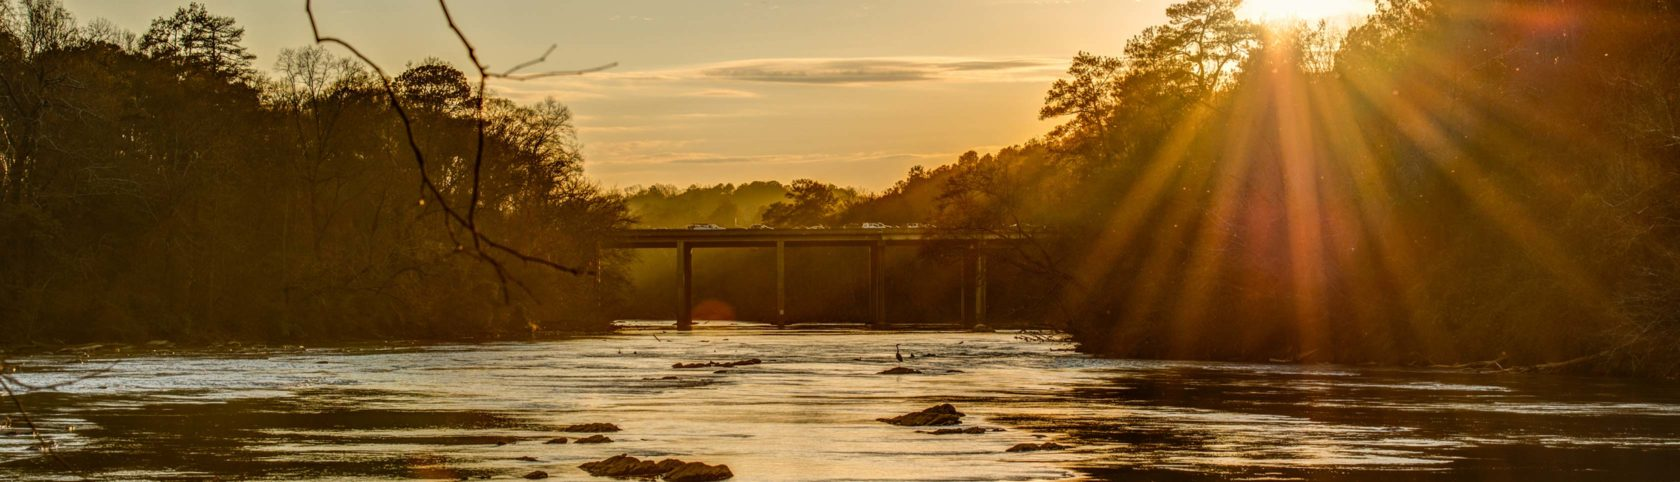 Chattahoochee River at sunset